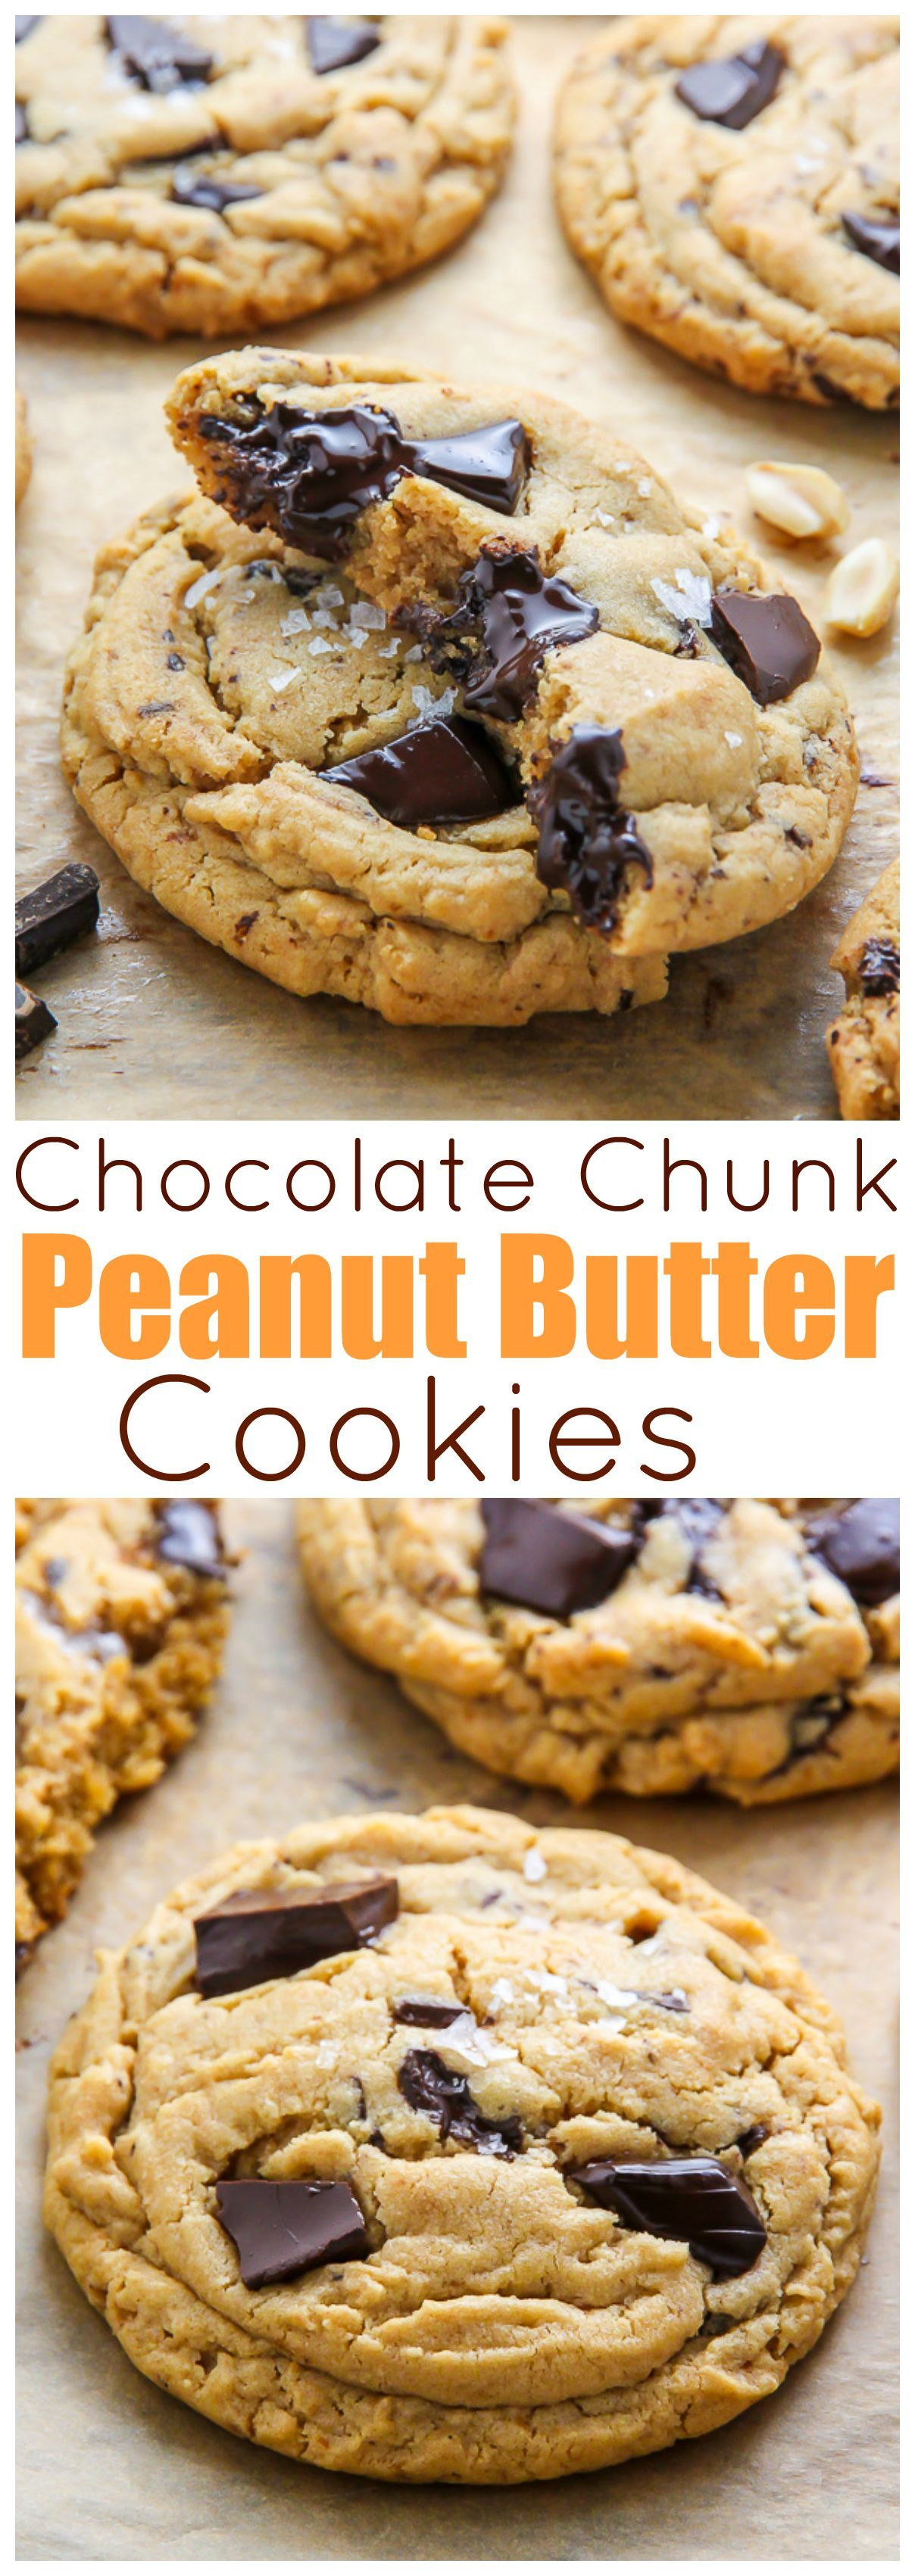 Batch Chocolate Chunk Peanut Butter Cookies Ultra thick soft batch peanut butter cookies loaded with chocolate chunks! Perfect with a cup of coffee or a cold glass of milk.Ultra thick soft batch peanut butter cookies loaded with chocolate chunks! Perfect with a cup of coffee or a cold glass of milk.